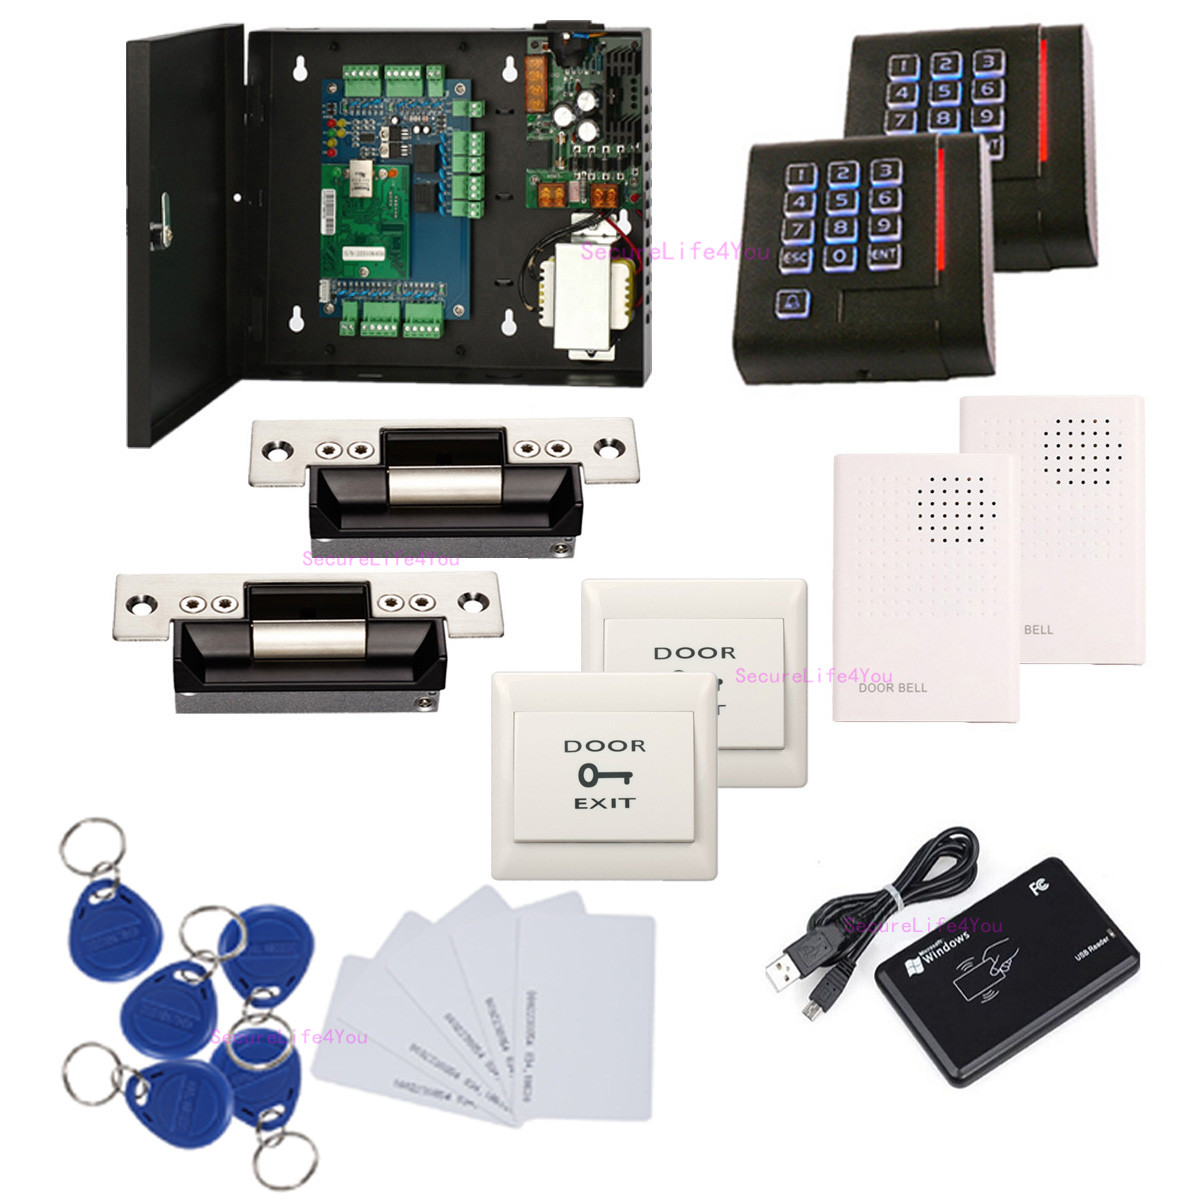 2 doors access control system kit ansi strike lock 110v power box2 doors access control panel steel power supply box( psu, 110v~240v) keypad reader exit button wired doorbell heavy duty electric door strike lock rfid